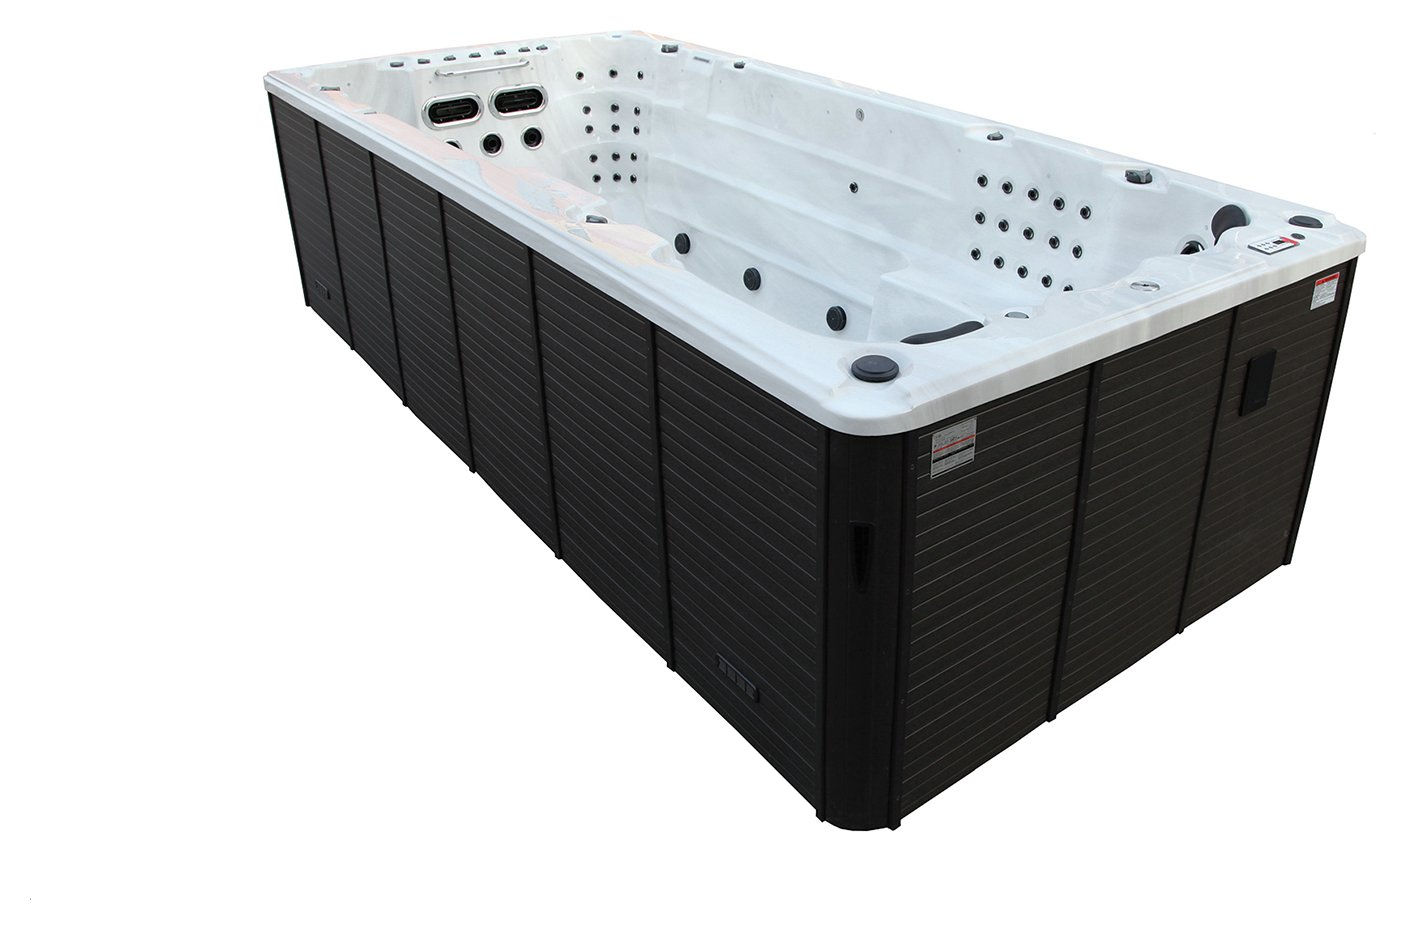 sale on canadian spa co st lawrence deluxe 16ft 71 jet swim hot tub canadian spa company now av. Black Bedroom Furniture Sets. Home Design Ideas